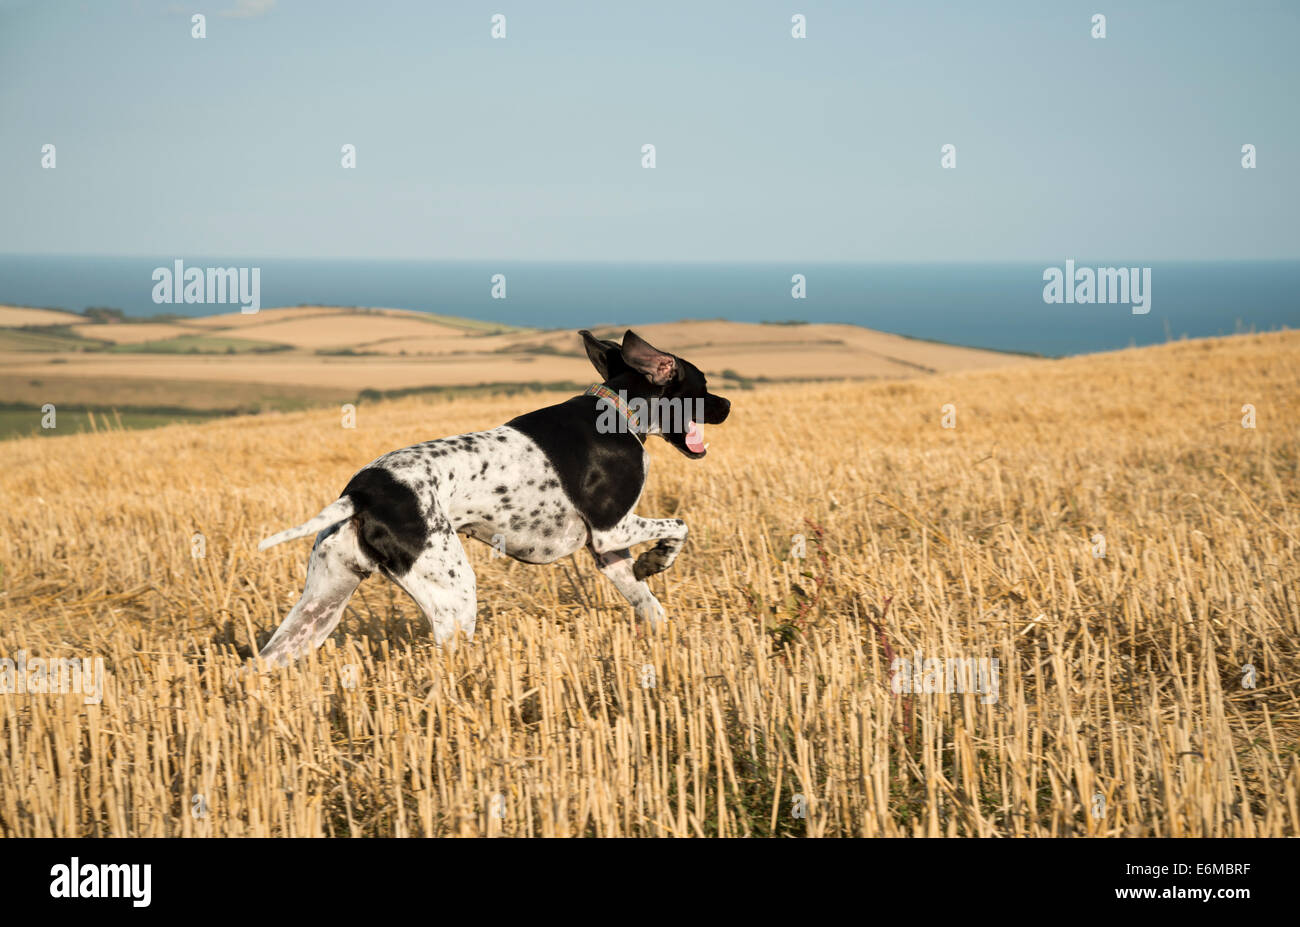 English Pointer dog in a stubble field. - Stock Image